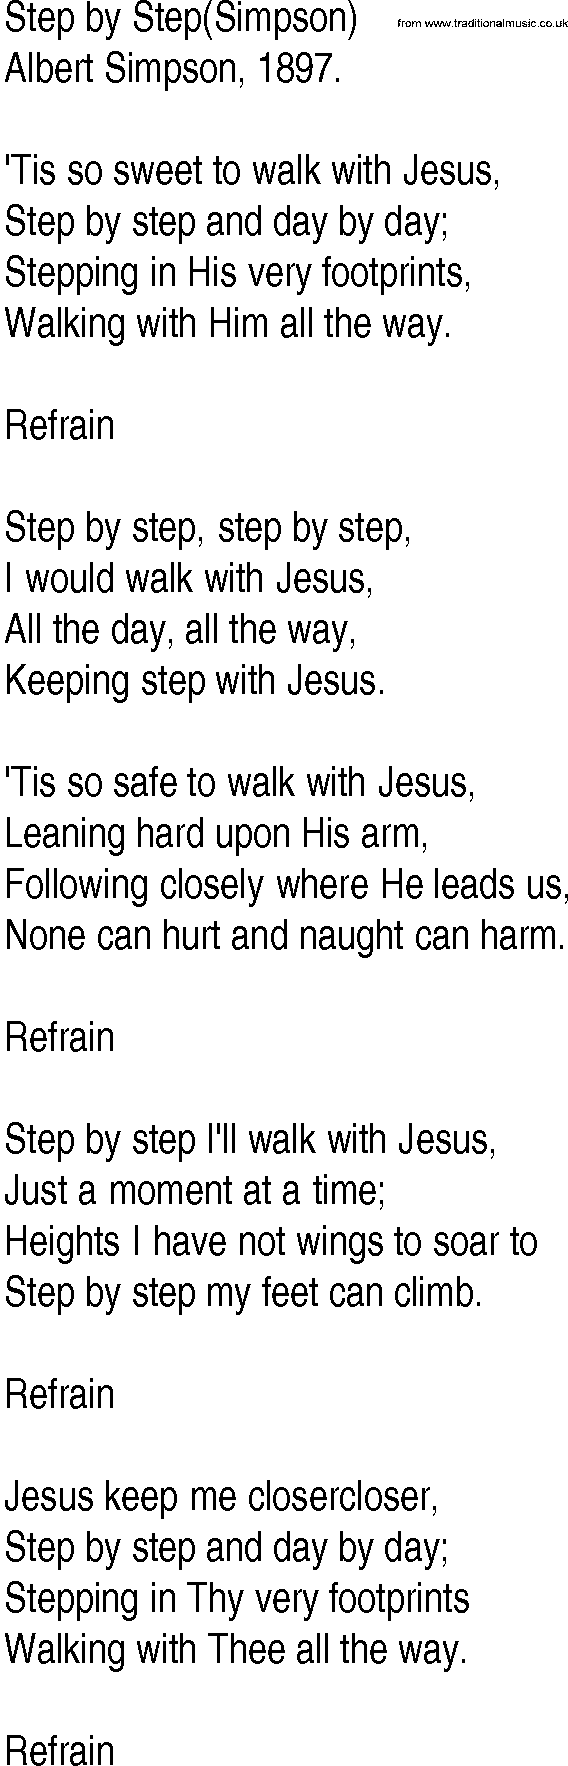 Hymn and Gospel Song Lyrics for Step by Step(Simpson) by ...